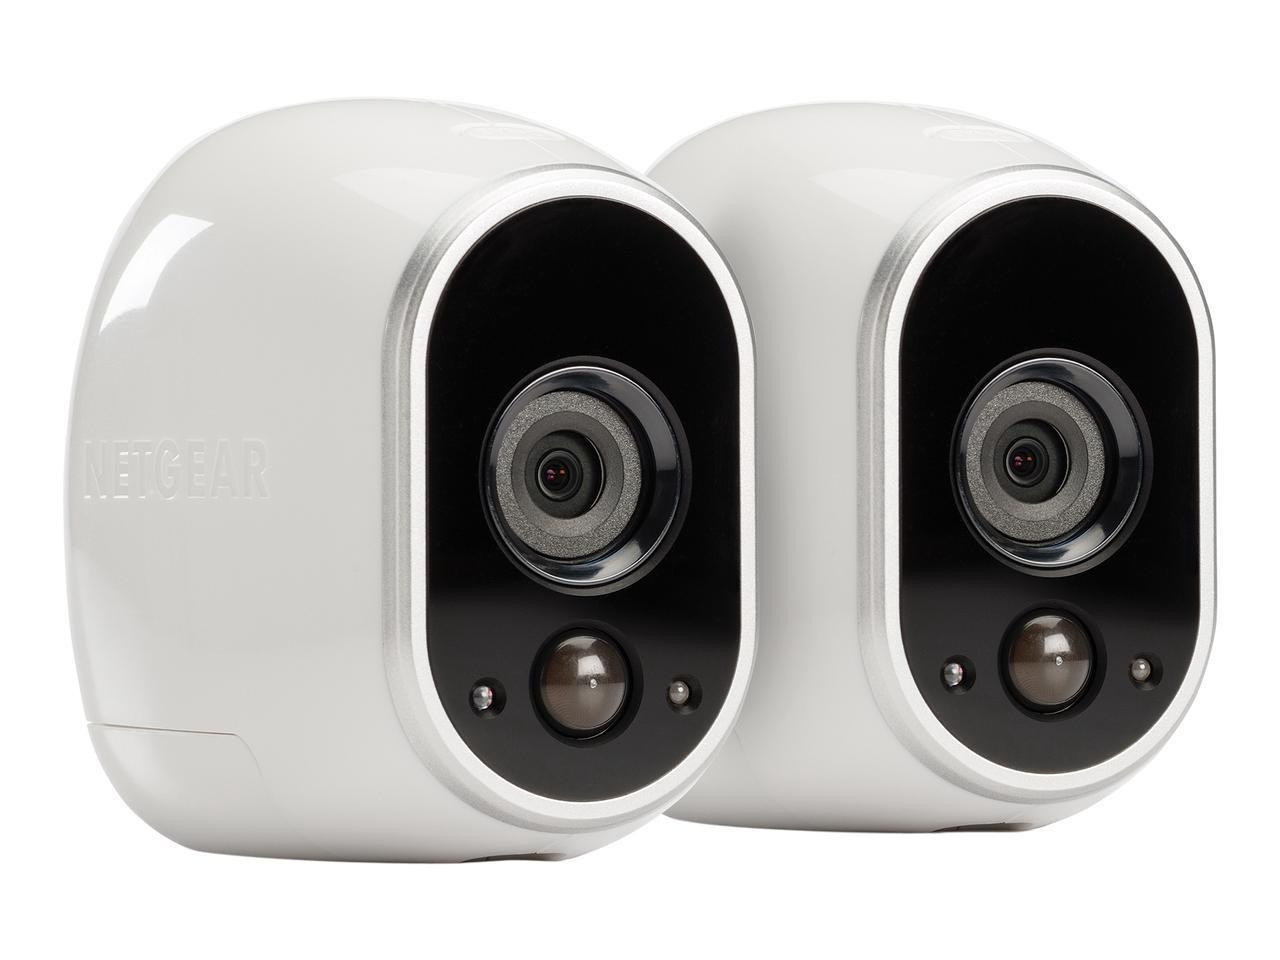 Arlo VMS3230-100NAR Wire-Free Security System with 2x HD 720p Cameras - Certified Refurbished